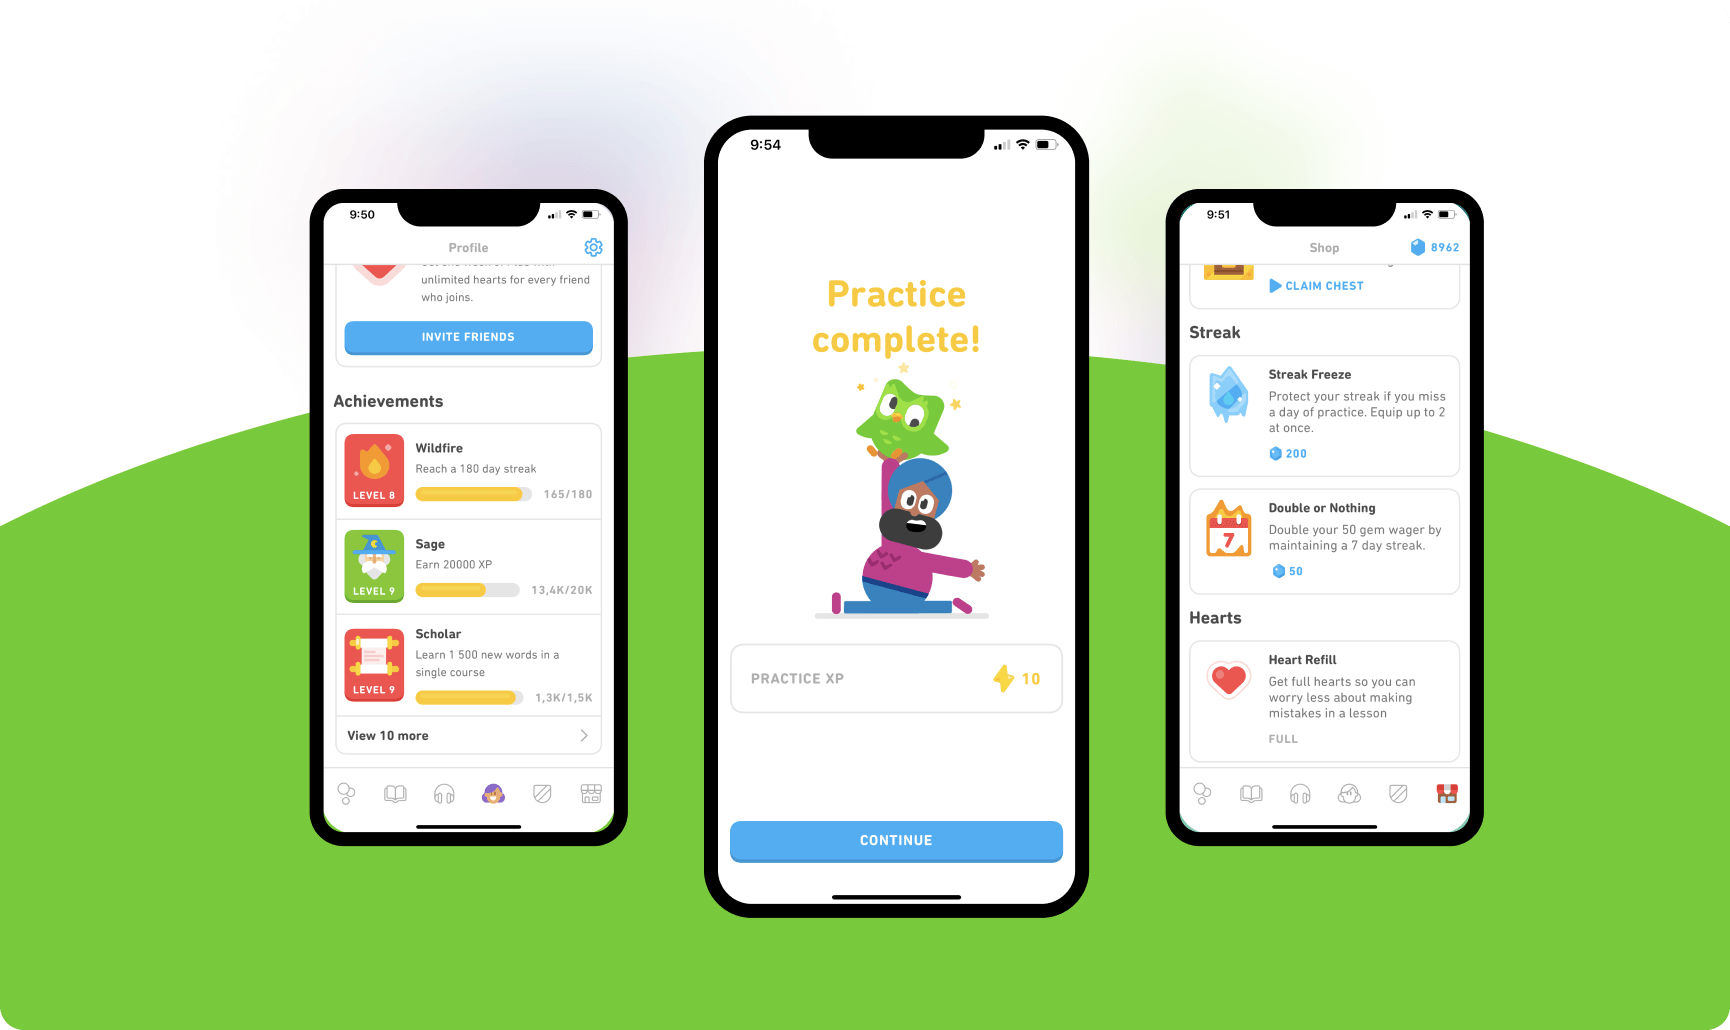 Duolingo gamification: achievements, experience points, virtual currency